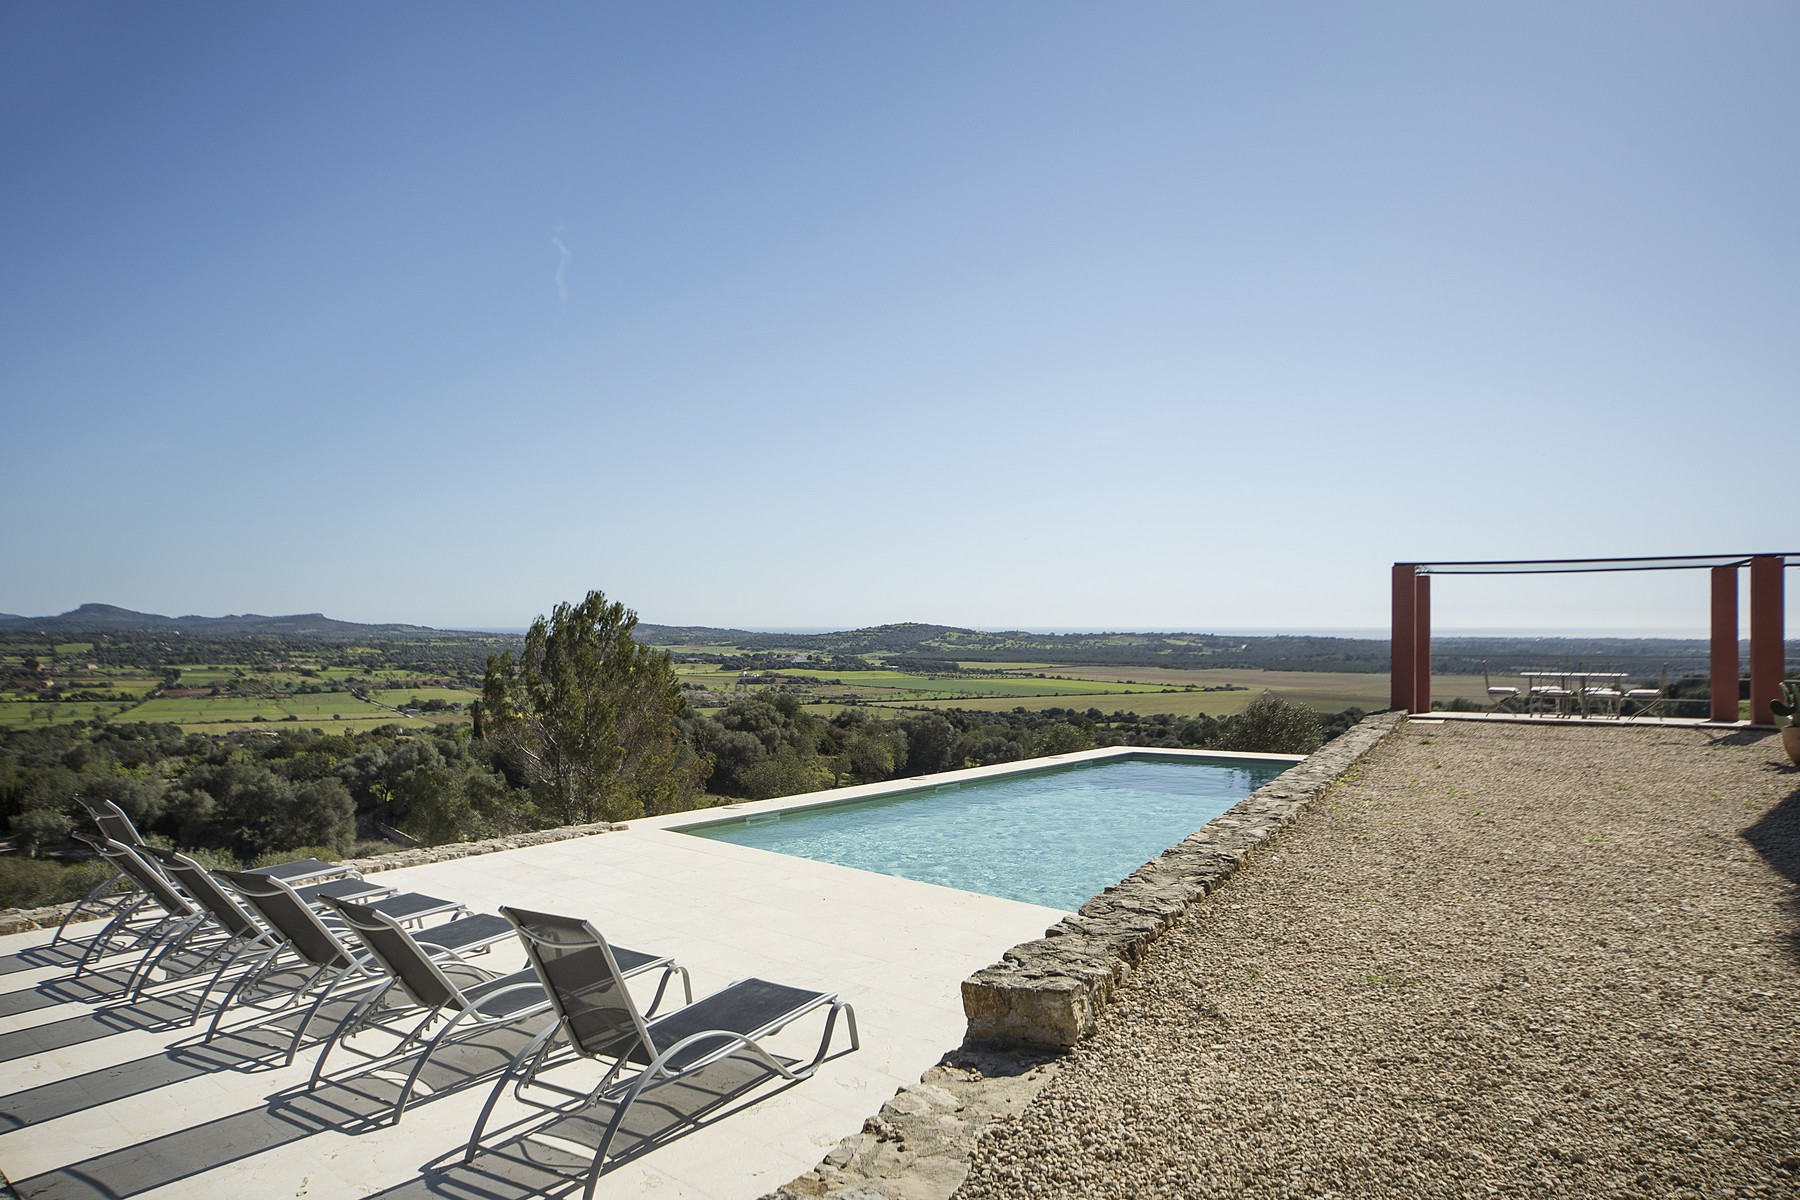 Casa Unifamiliar por un Venta en Newly built Finca with nice views near the coast Manacor, Balearic Islands, España